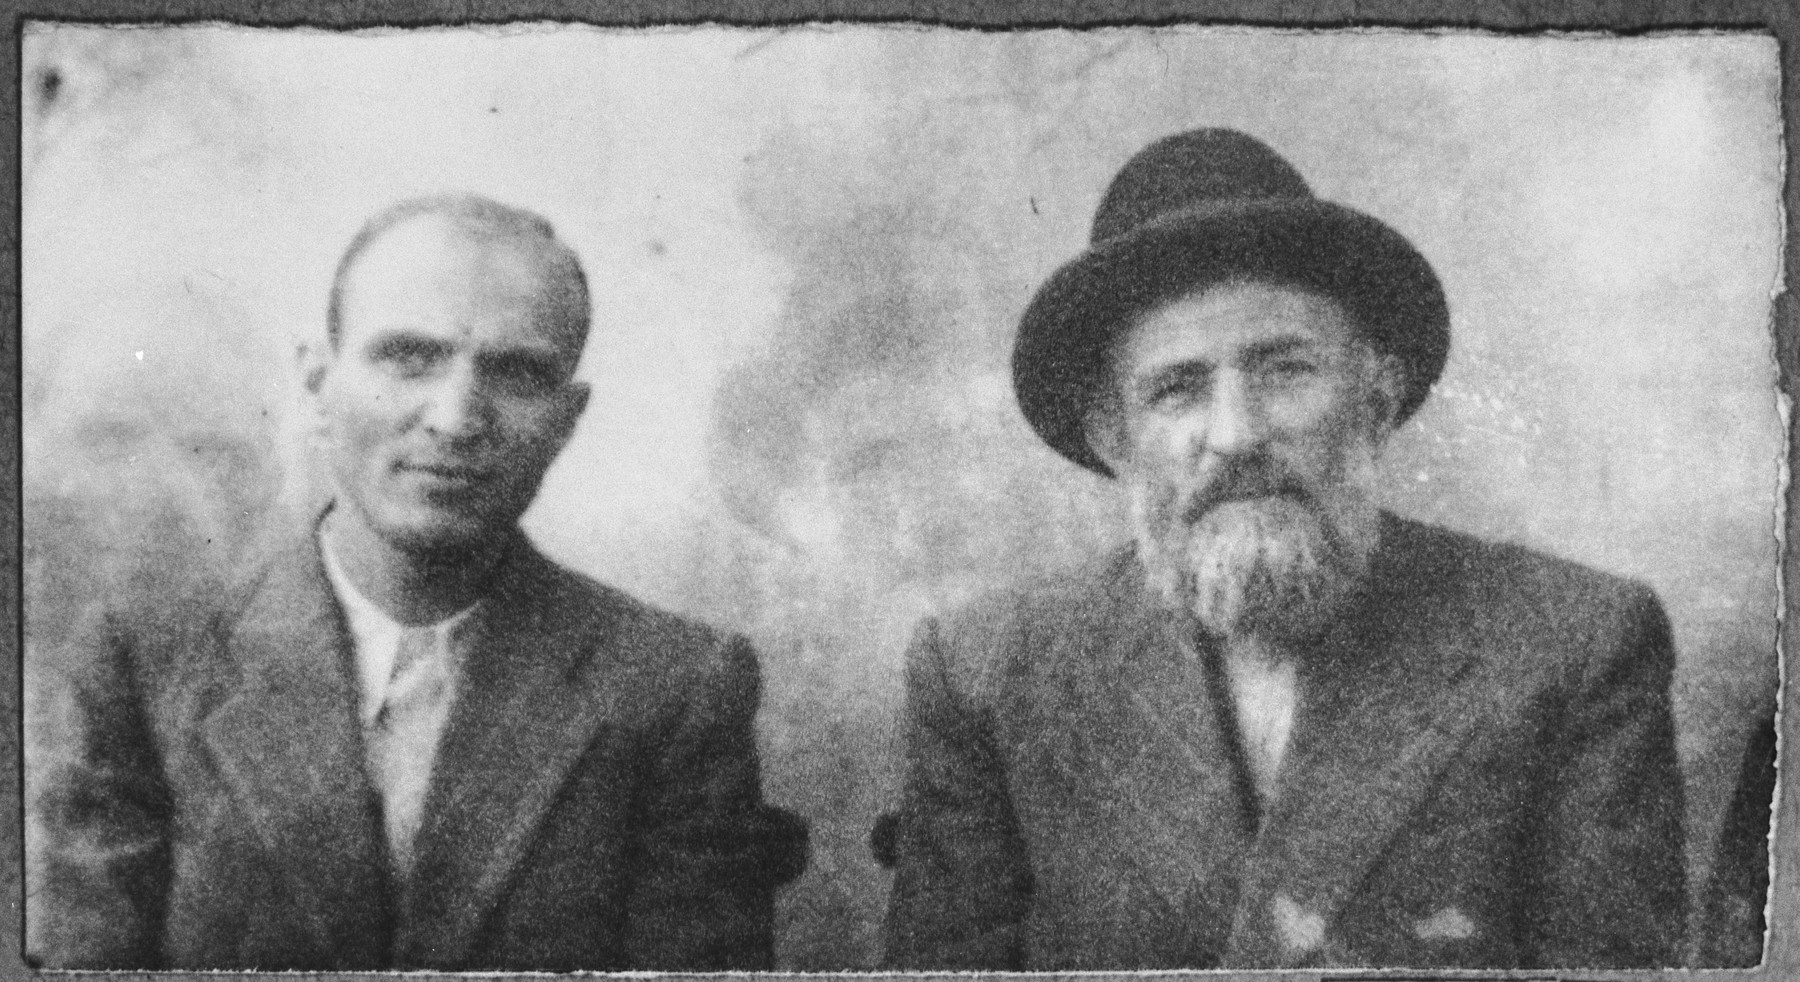 Portrait of Solomon Kassorla and his son, Dario.  Dario was a student.  They lived at Drinska 81 in Bitola.